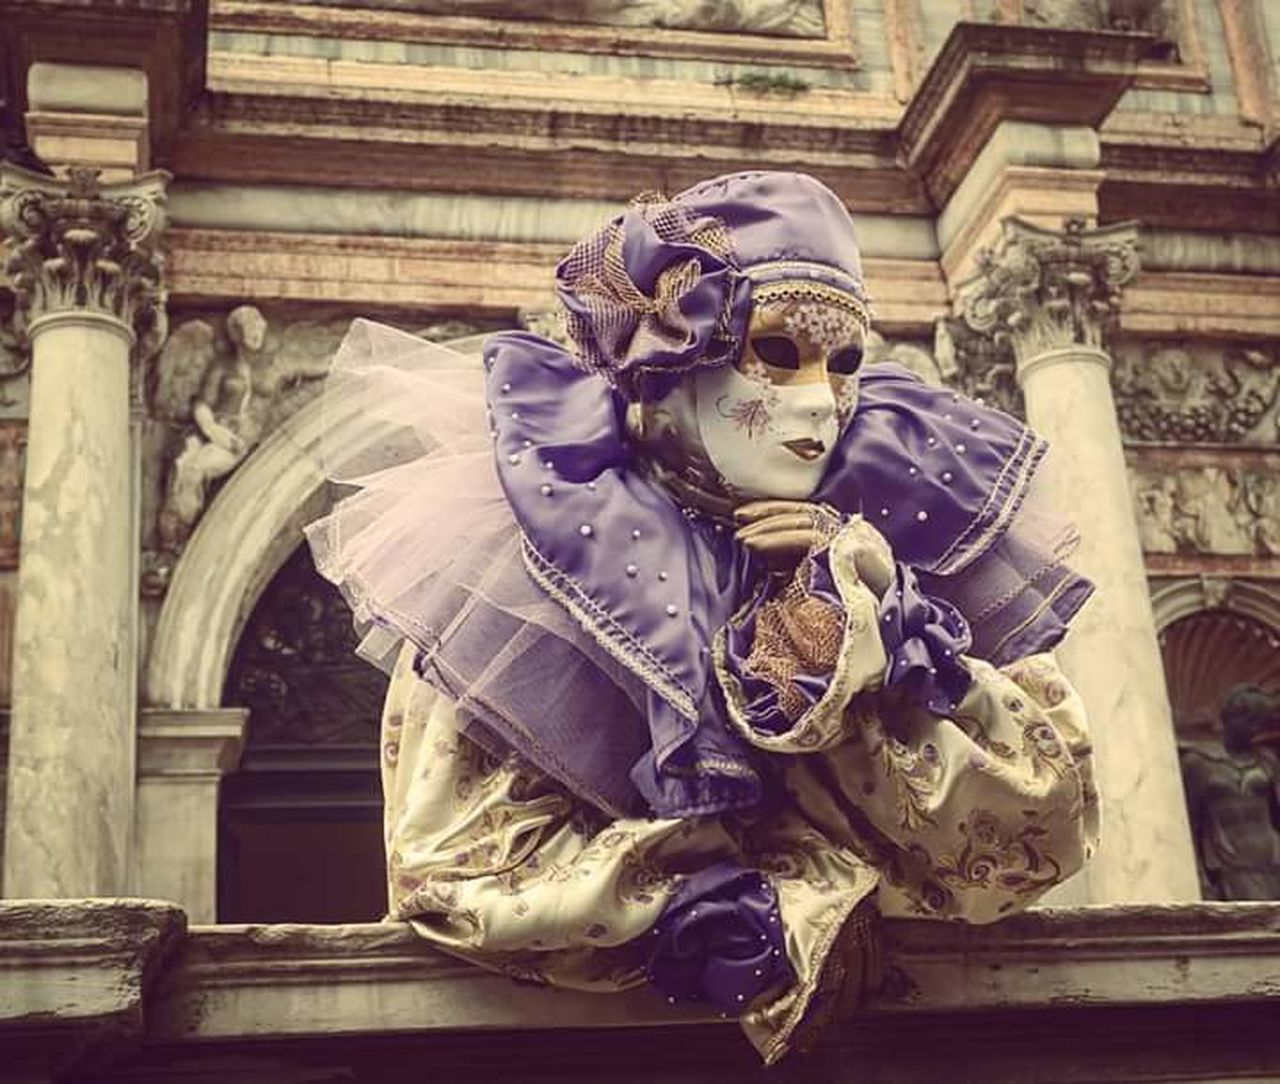 Carnevale di venezia martedì grasso Colours Of Carnival Contestgram Igers Igersitalia Venezia Venice Sanmarco Picoftheday Photooftheday Instagood Instalike Fashionista Dress Photo NX2000 Mirrorless Like Straikapose